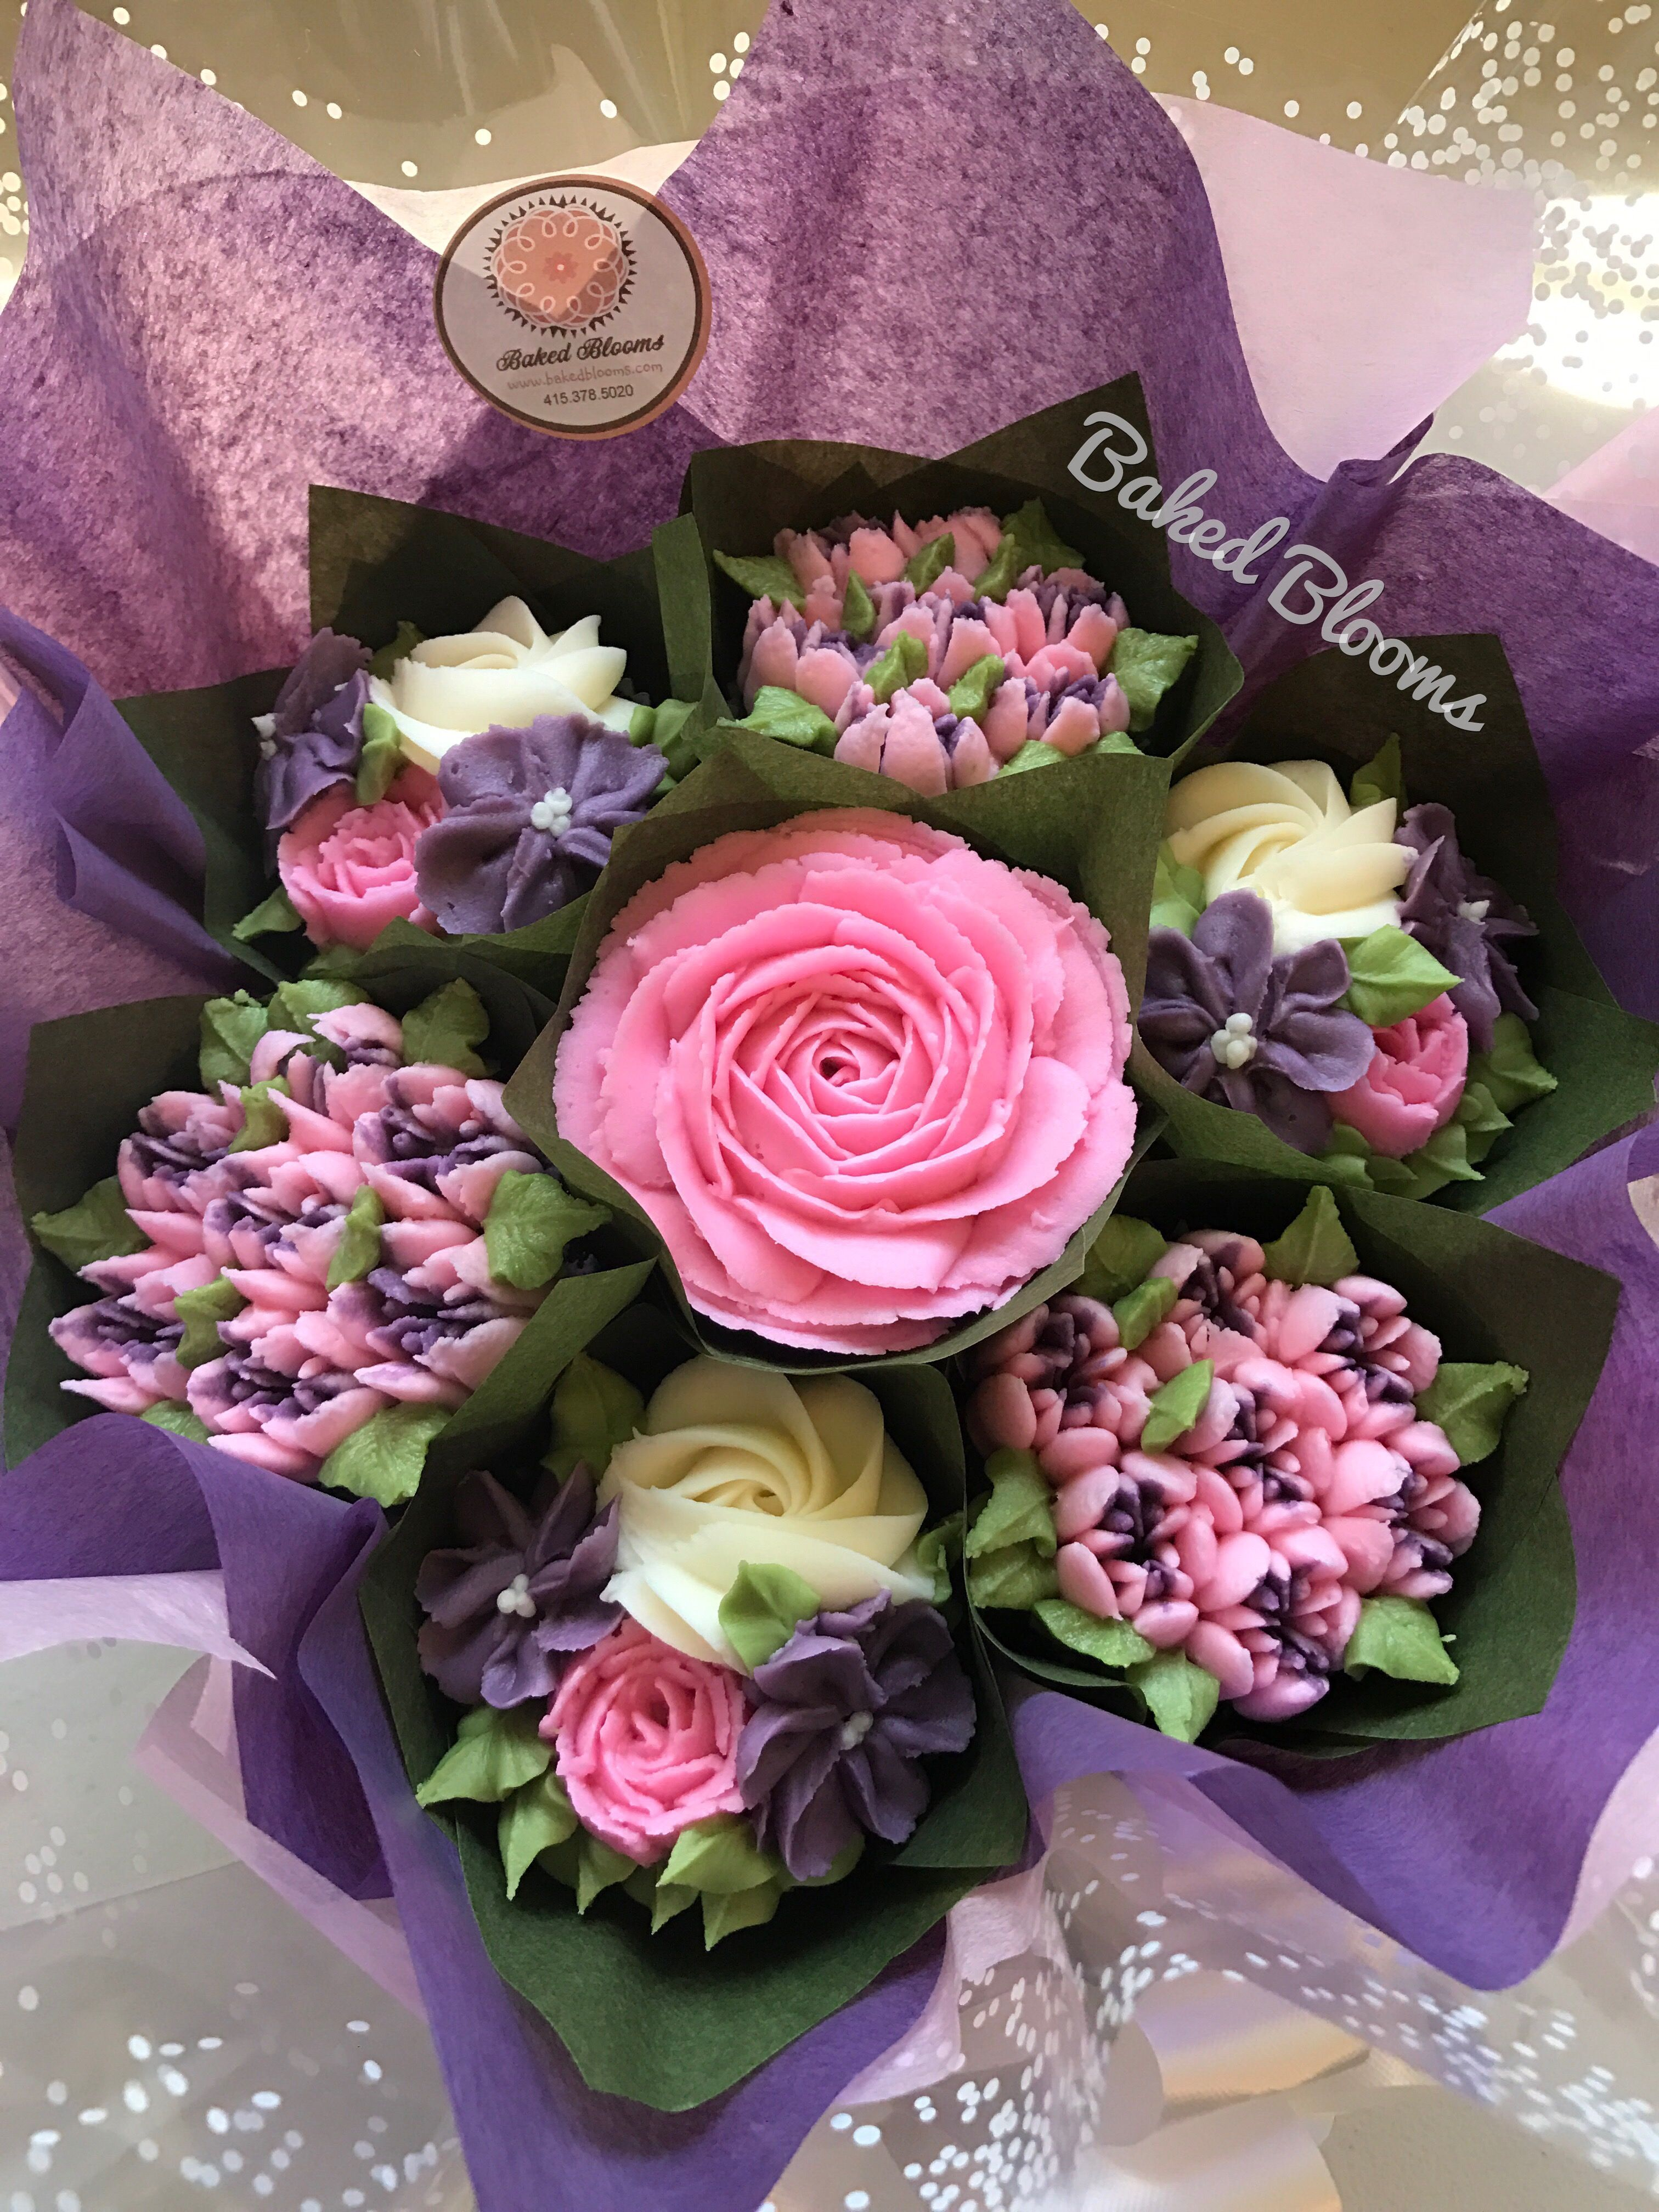 Small pink and purple birthday bouquet bakedblooms cakes small pink and purple birthday bouquet bakedblooms izmirmasajfo Image collections